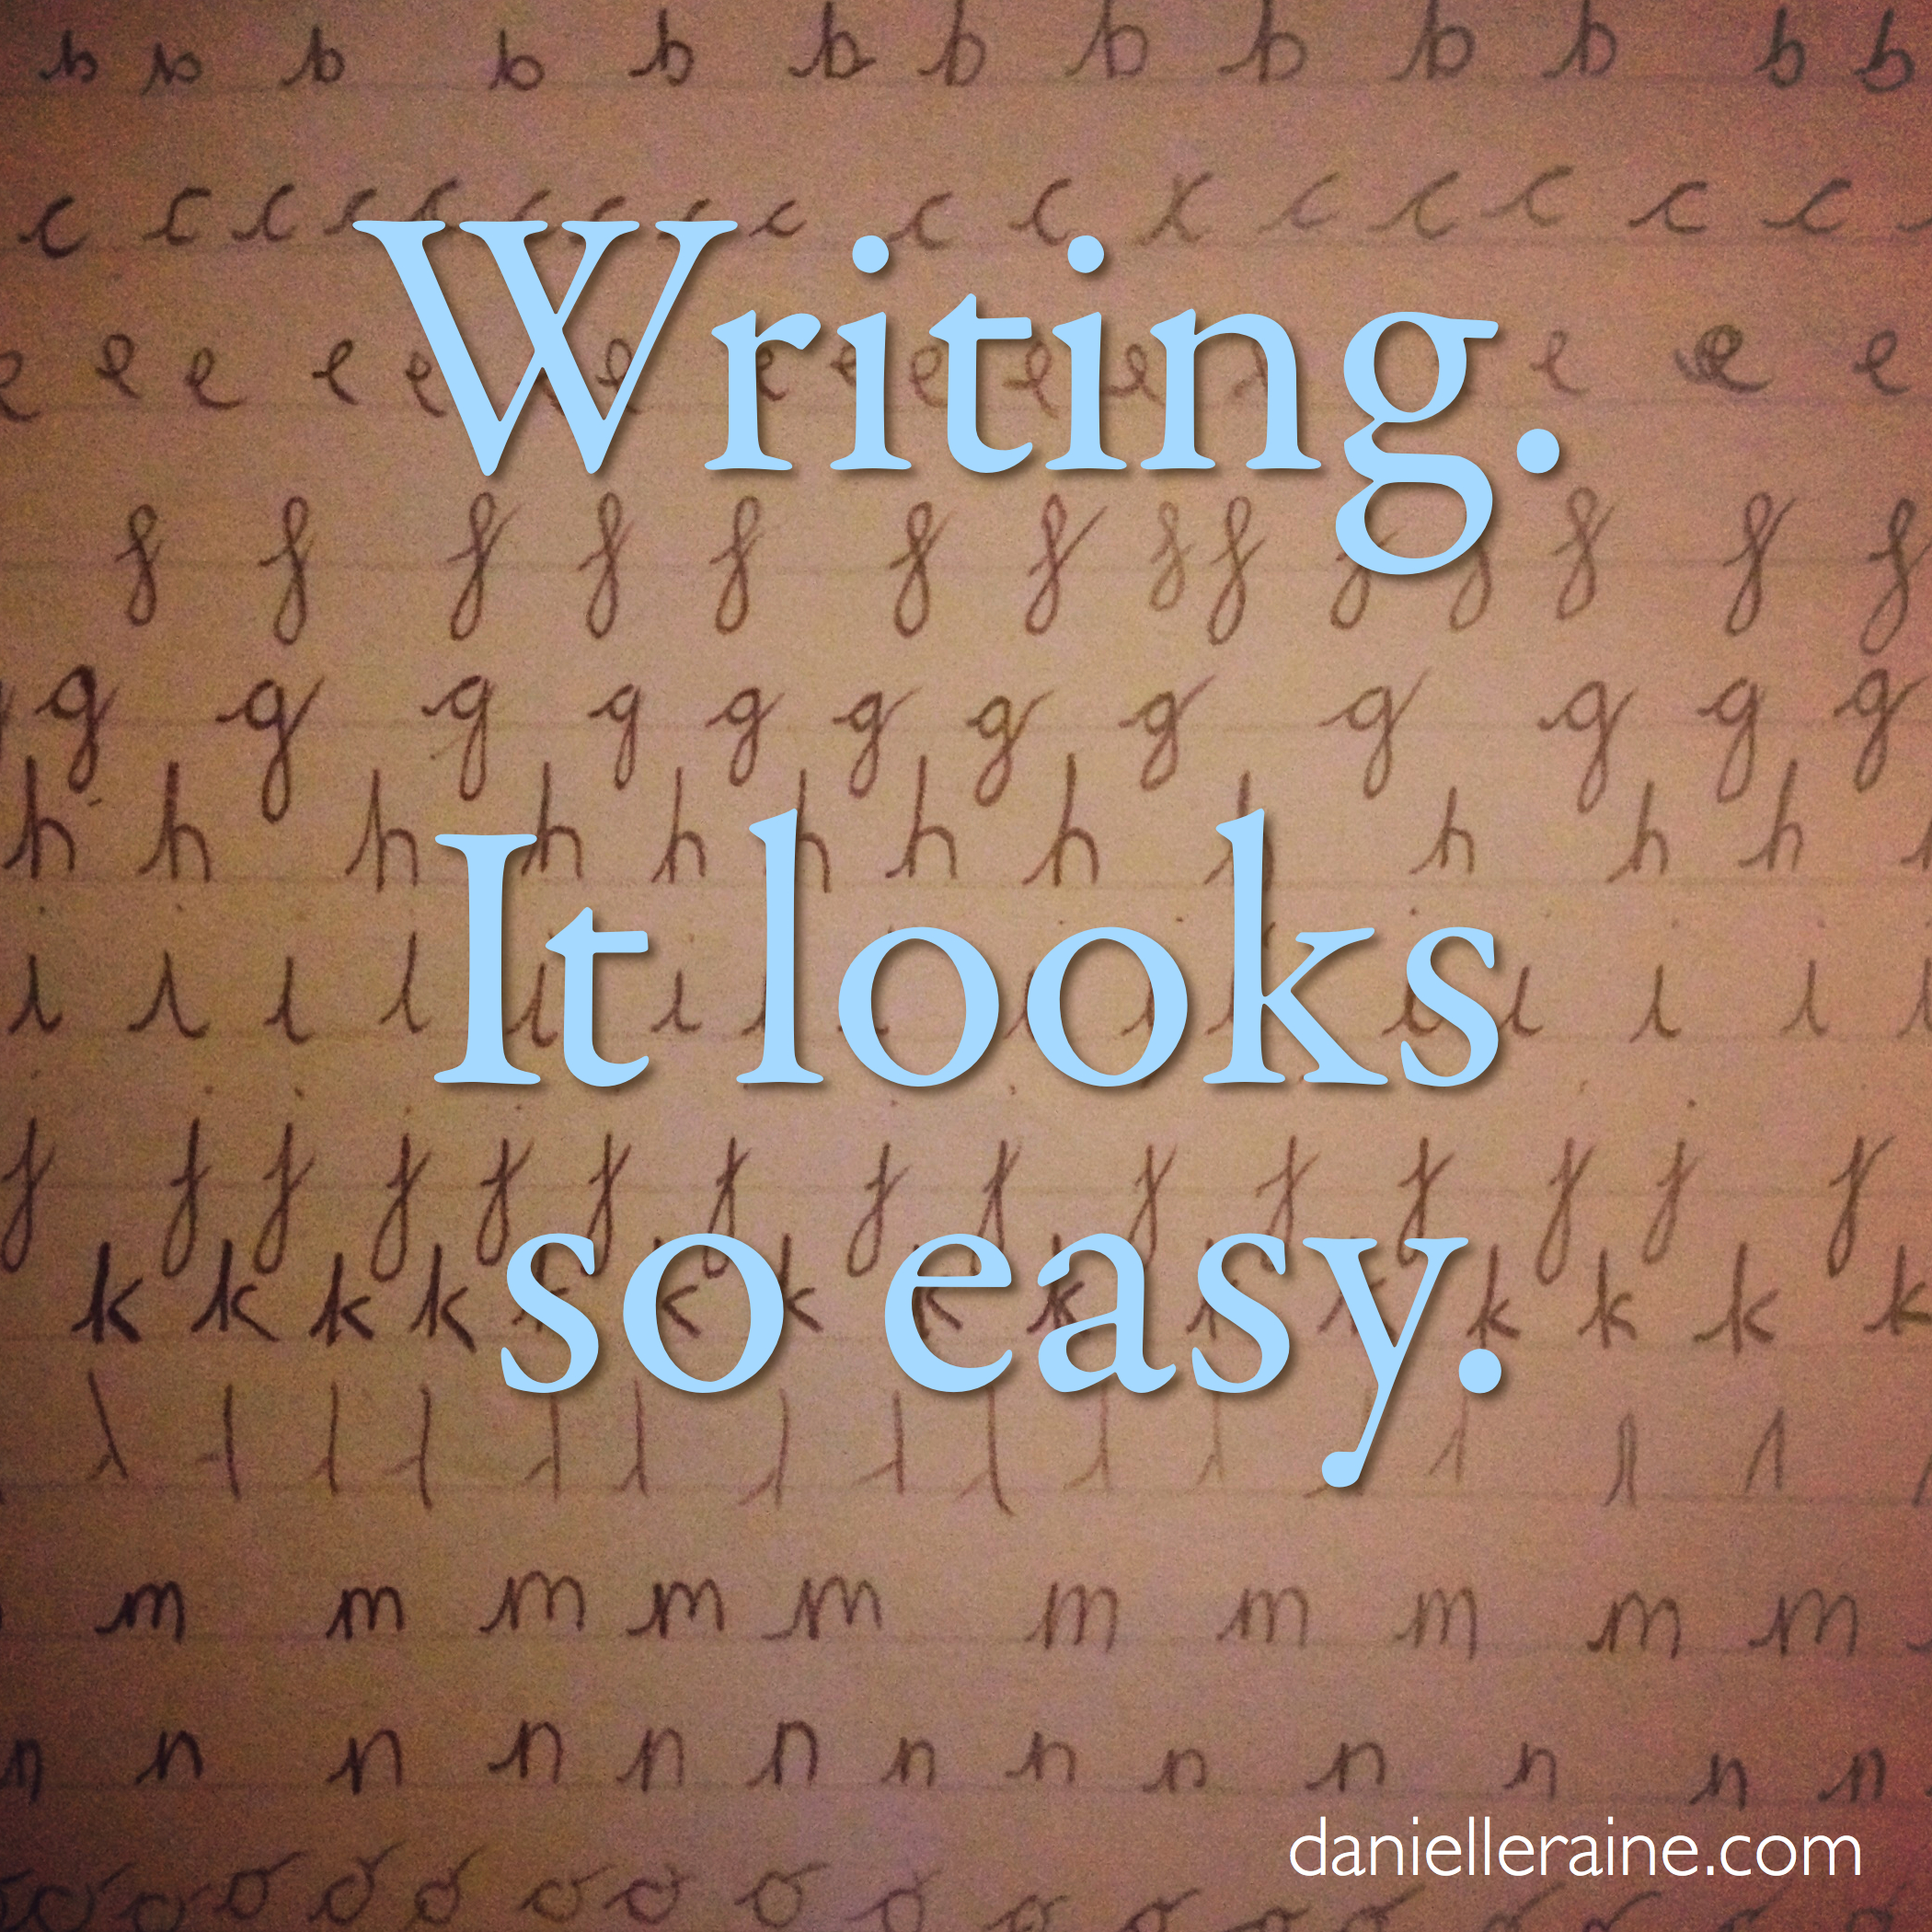 pinspiration for writers - writing looks so easy